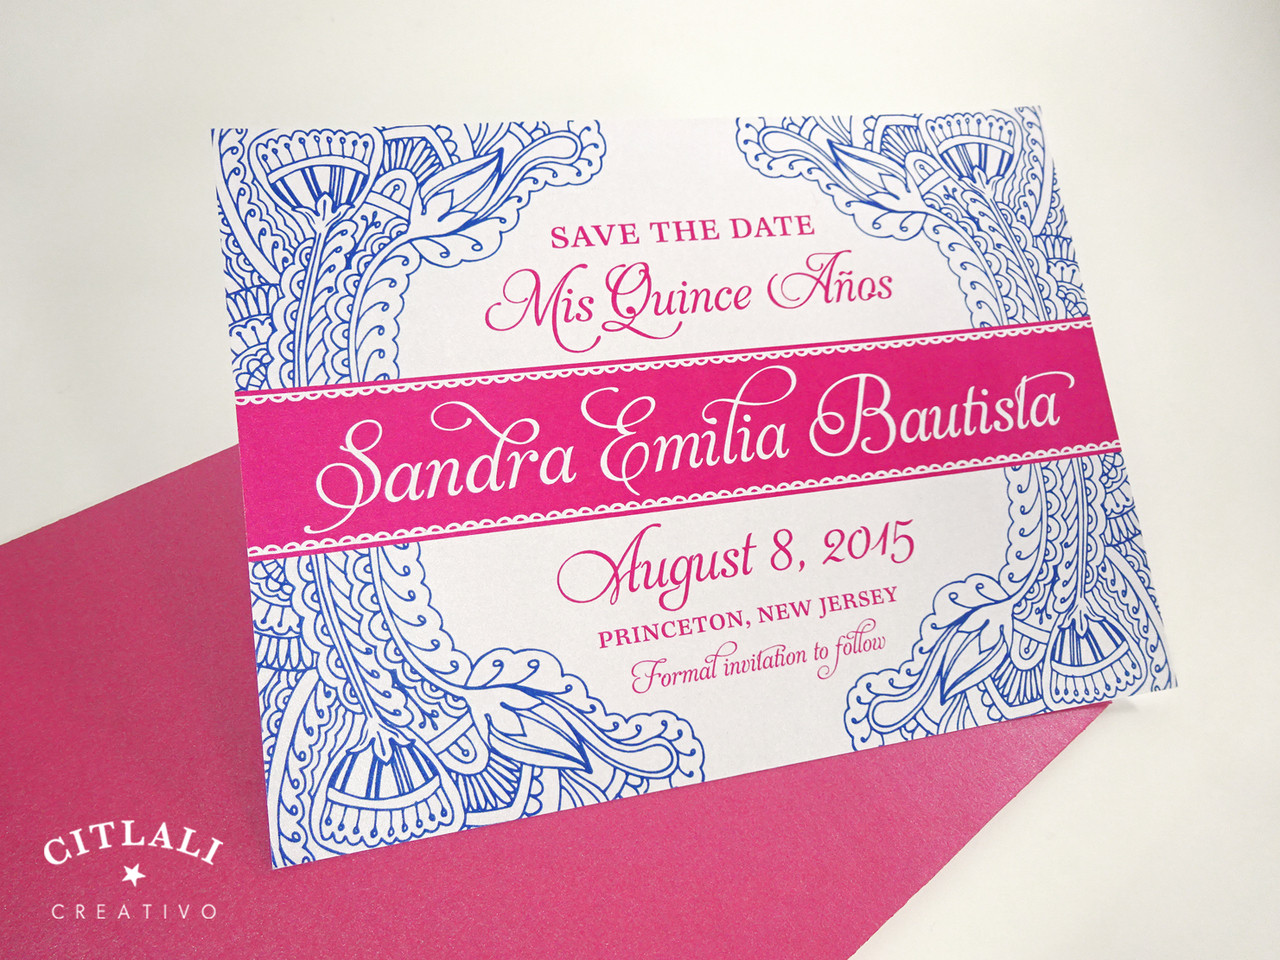 quinceaera floral paisley henna save the date card in hot pink cobalt blue